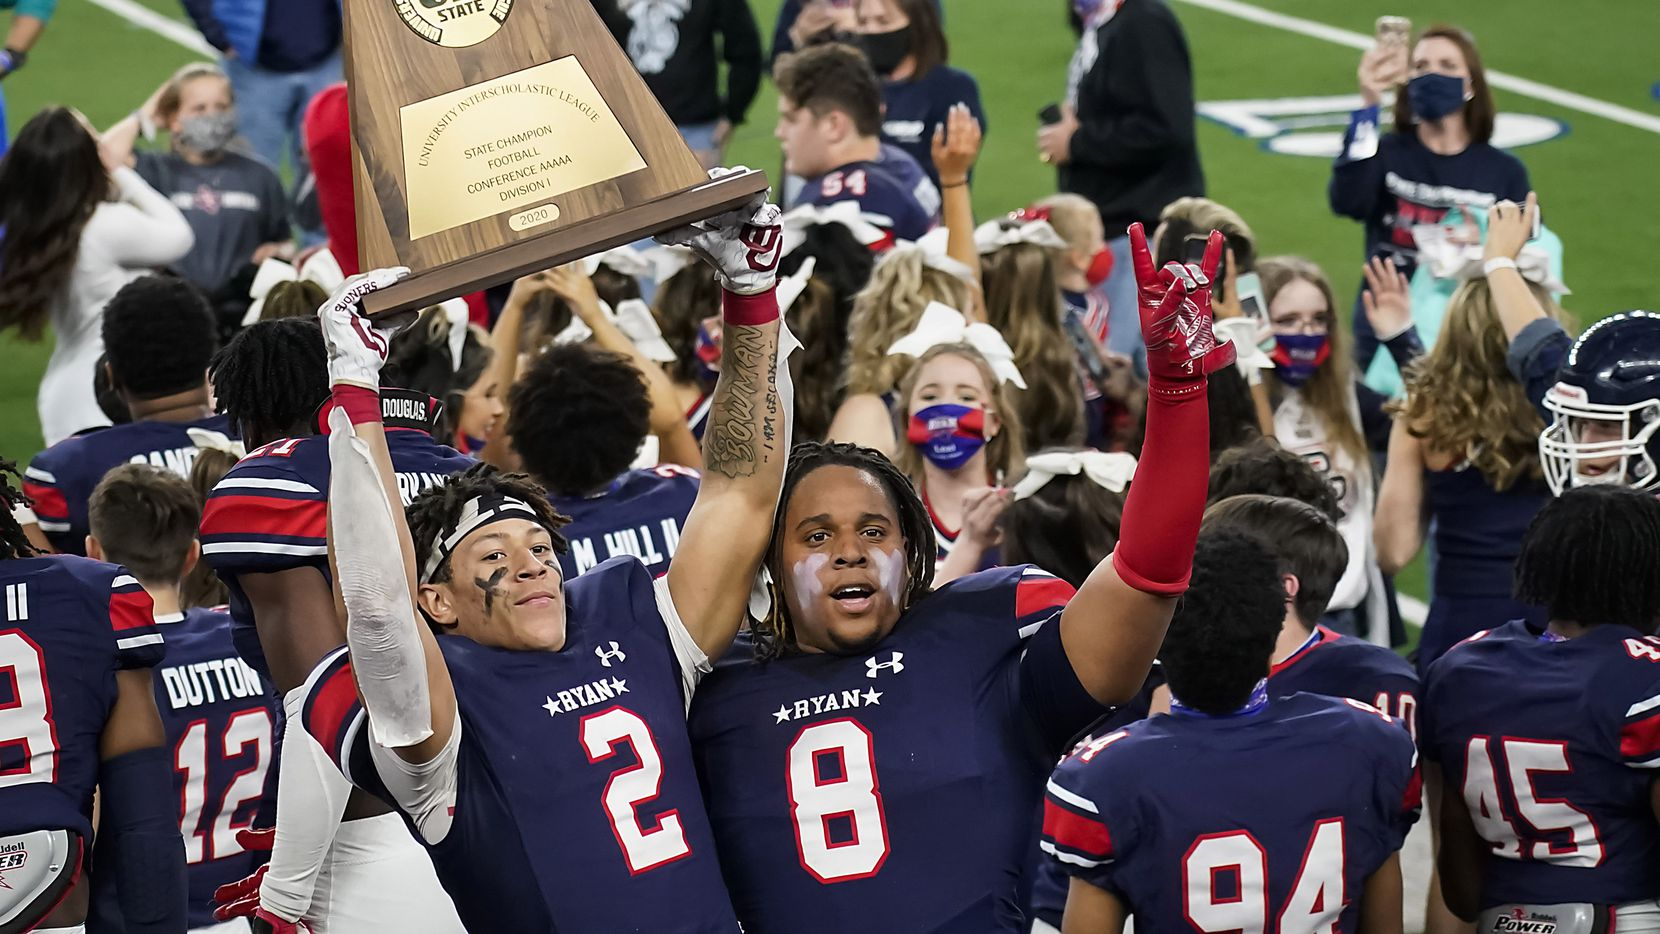 Denton Ryan wide receiver Billy Bowman Jr. (2) hoists the championship trophy with teammate Jay Sheppard (8) as players celebrate a 59-14 victory over Cedar Park to win the Class 5A Division I state football championship game at AT&T Stadium on Friday, Jan. 15, 2021, in Arlington, Texas. (Smiley N. Pool/The Dallas Morning News)